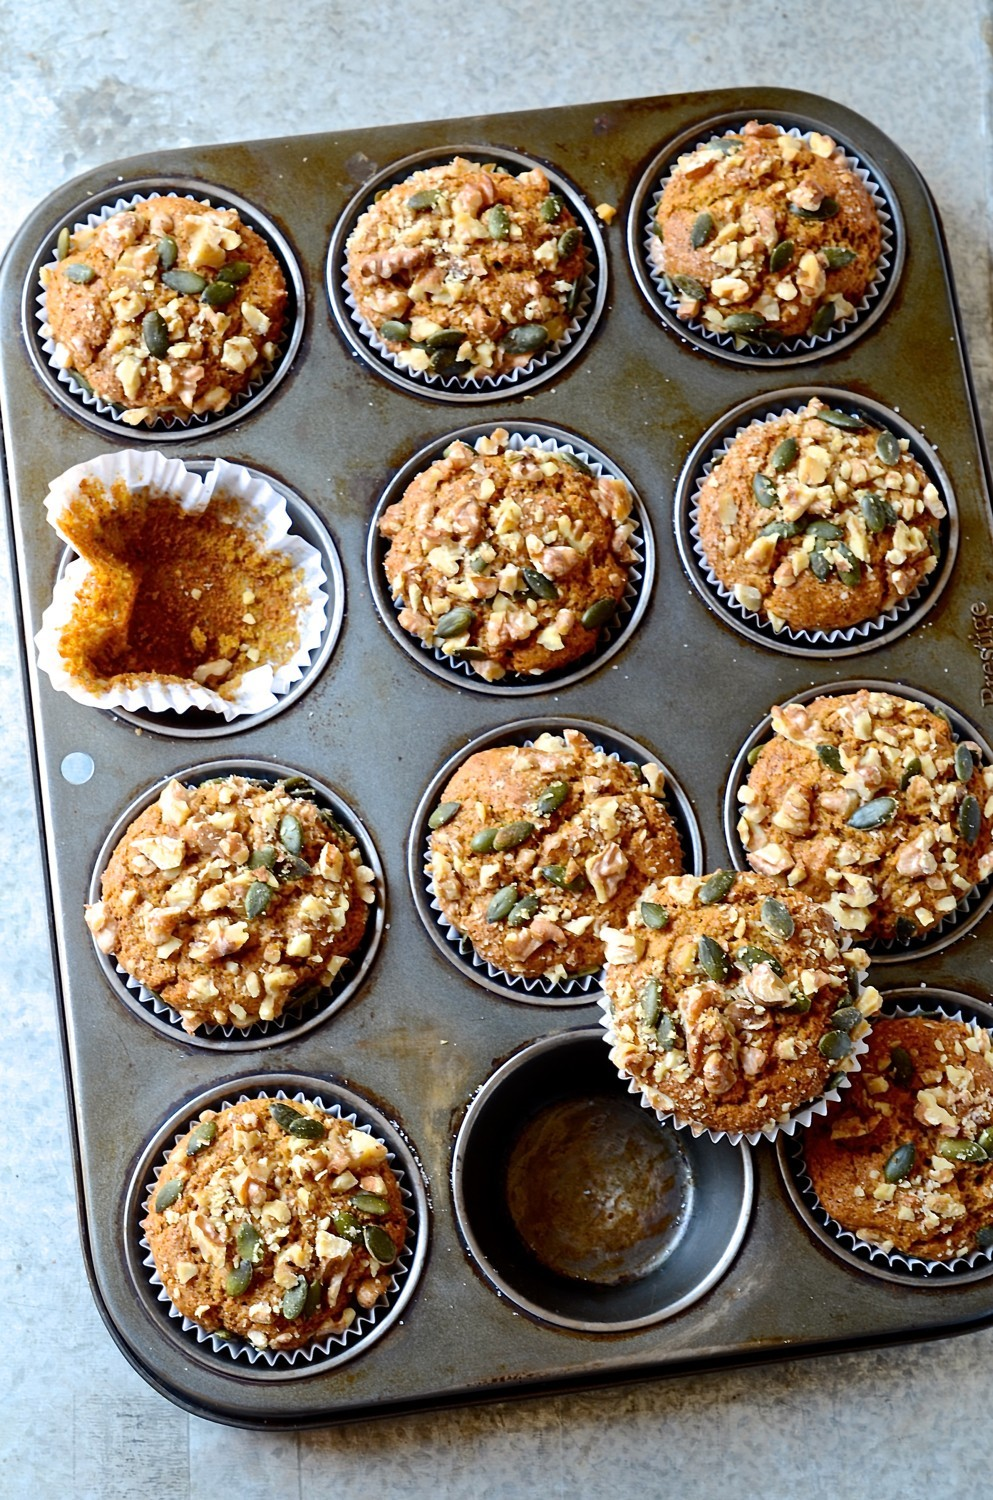 Cinnamon spiced pumpkin muffins with walnut crumble | Bibby's Kitchen